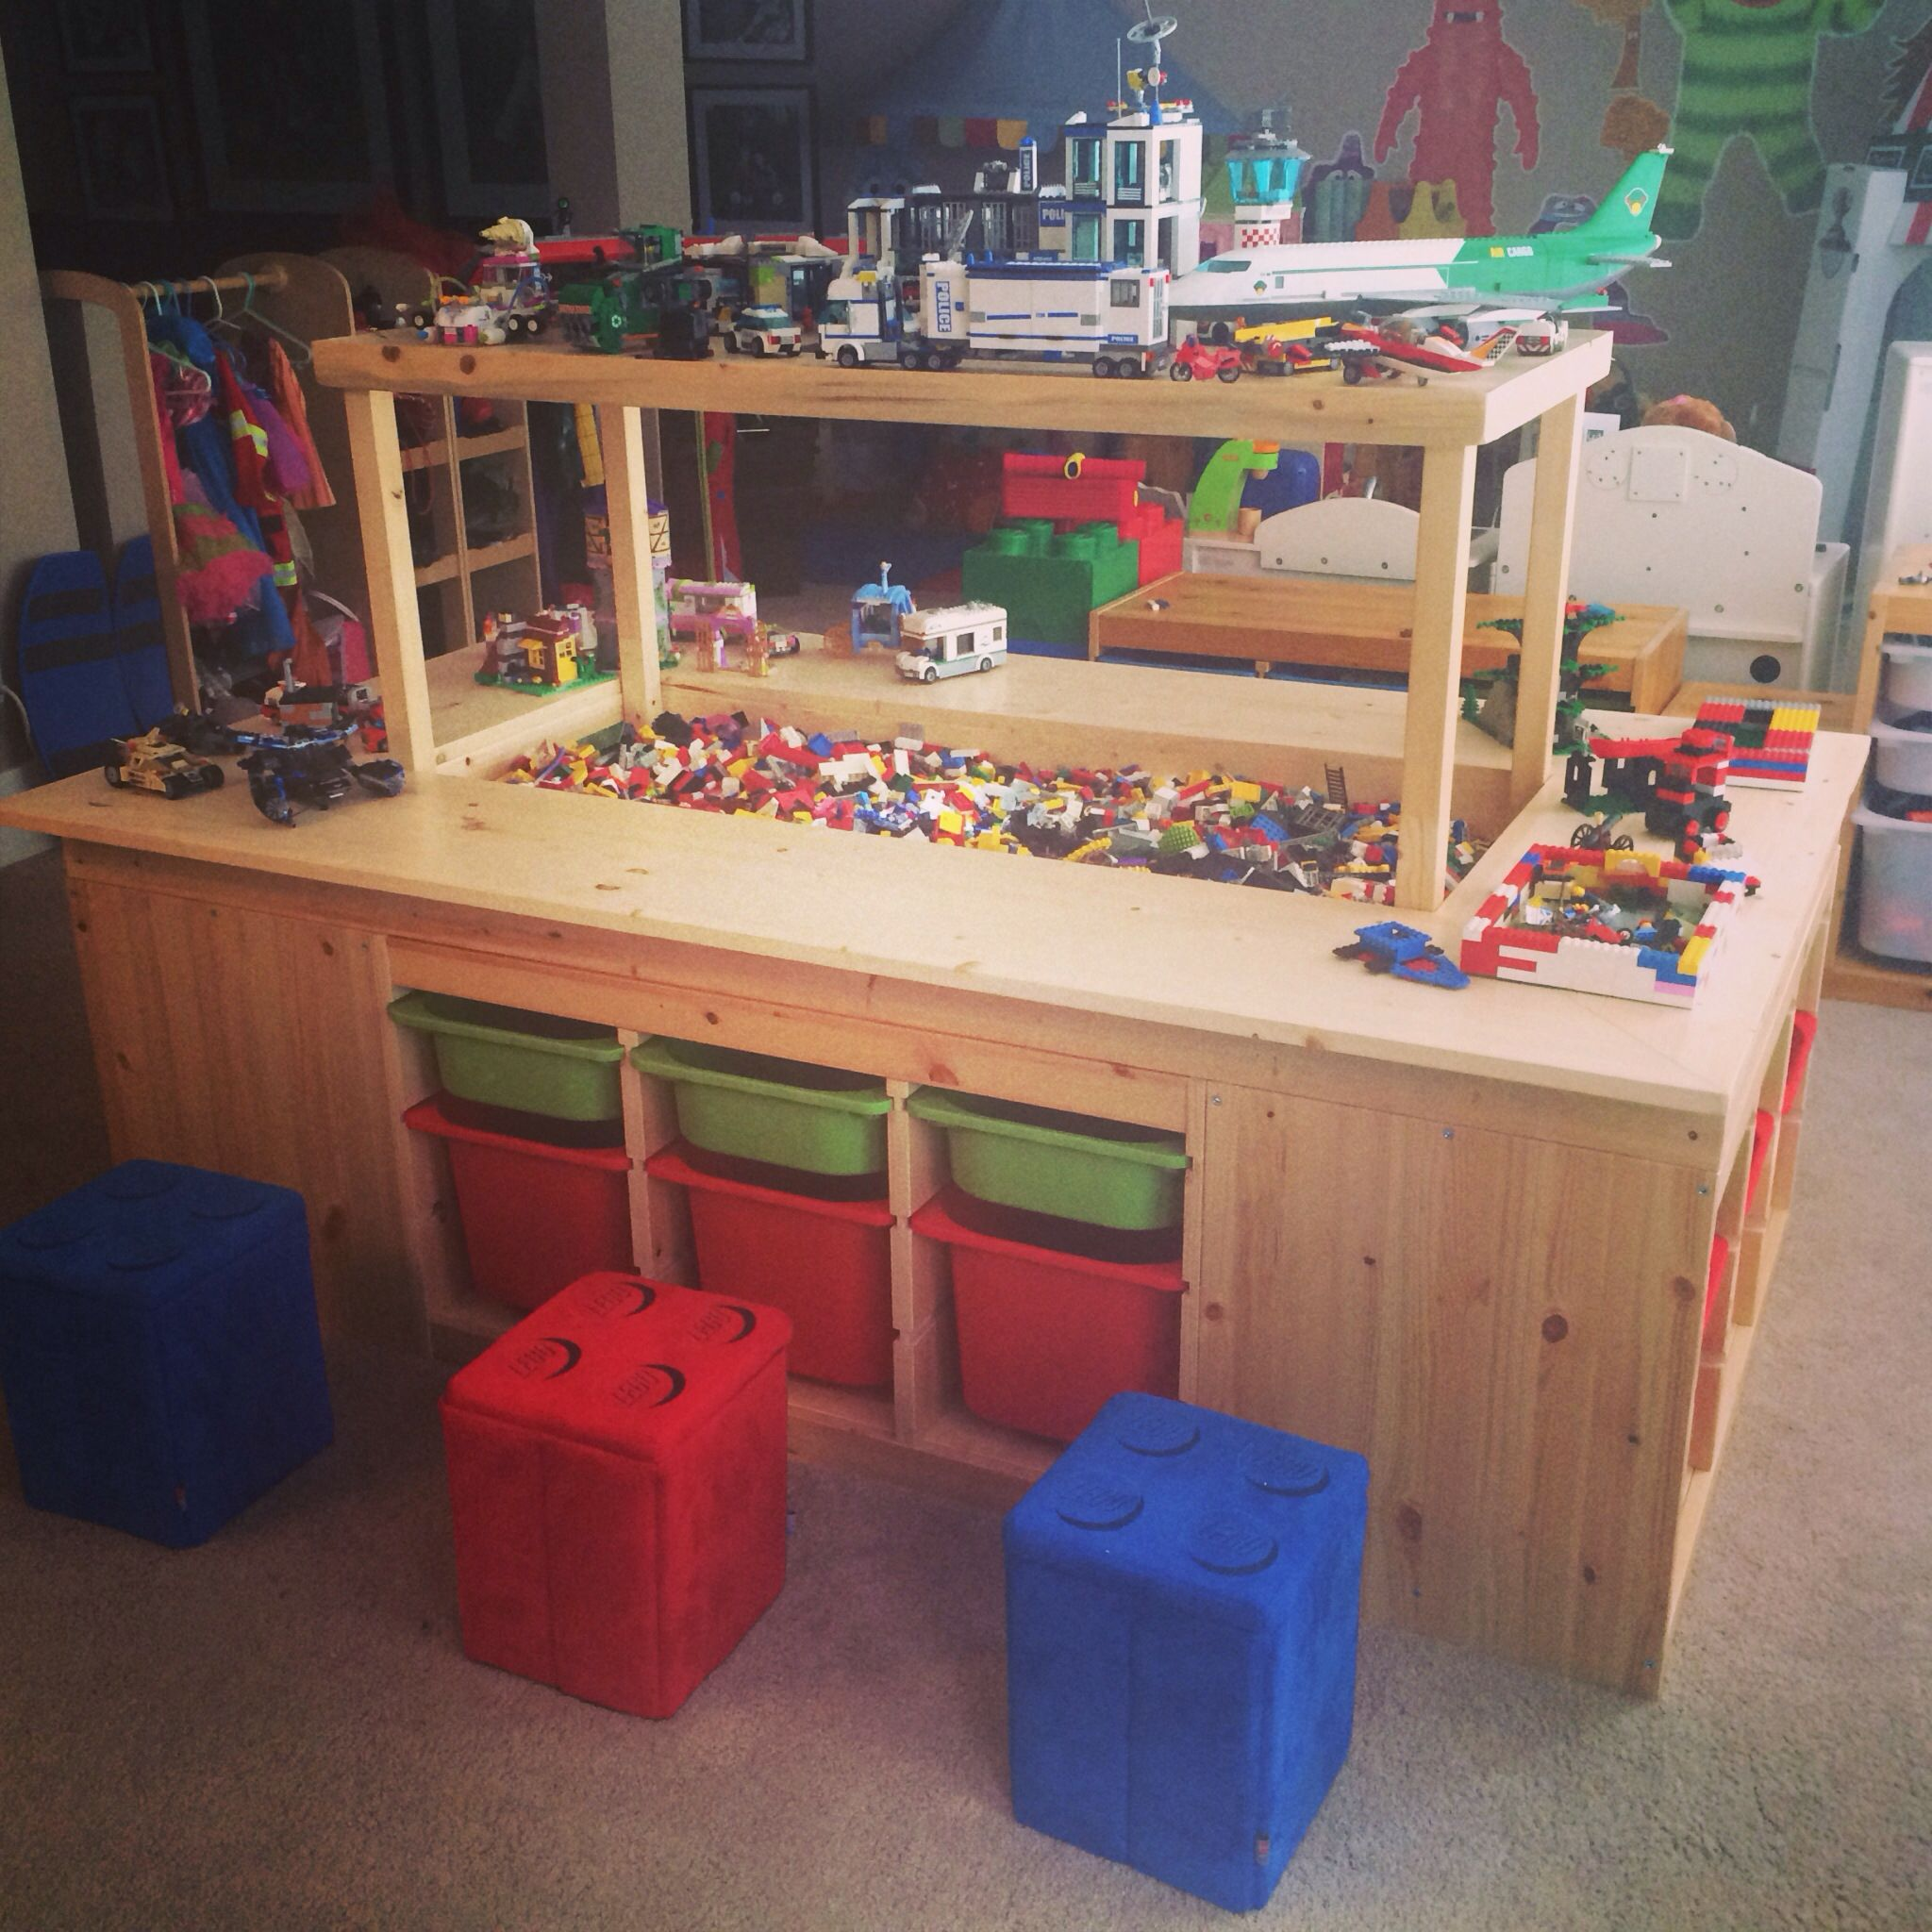 steve built the kids the most amazing lego table legofun - Boys Room Lego Ideas